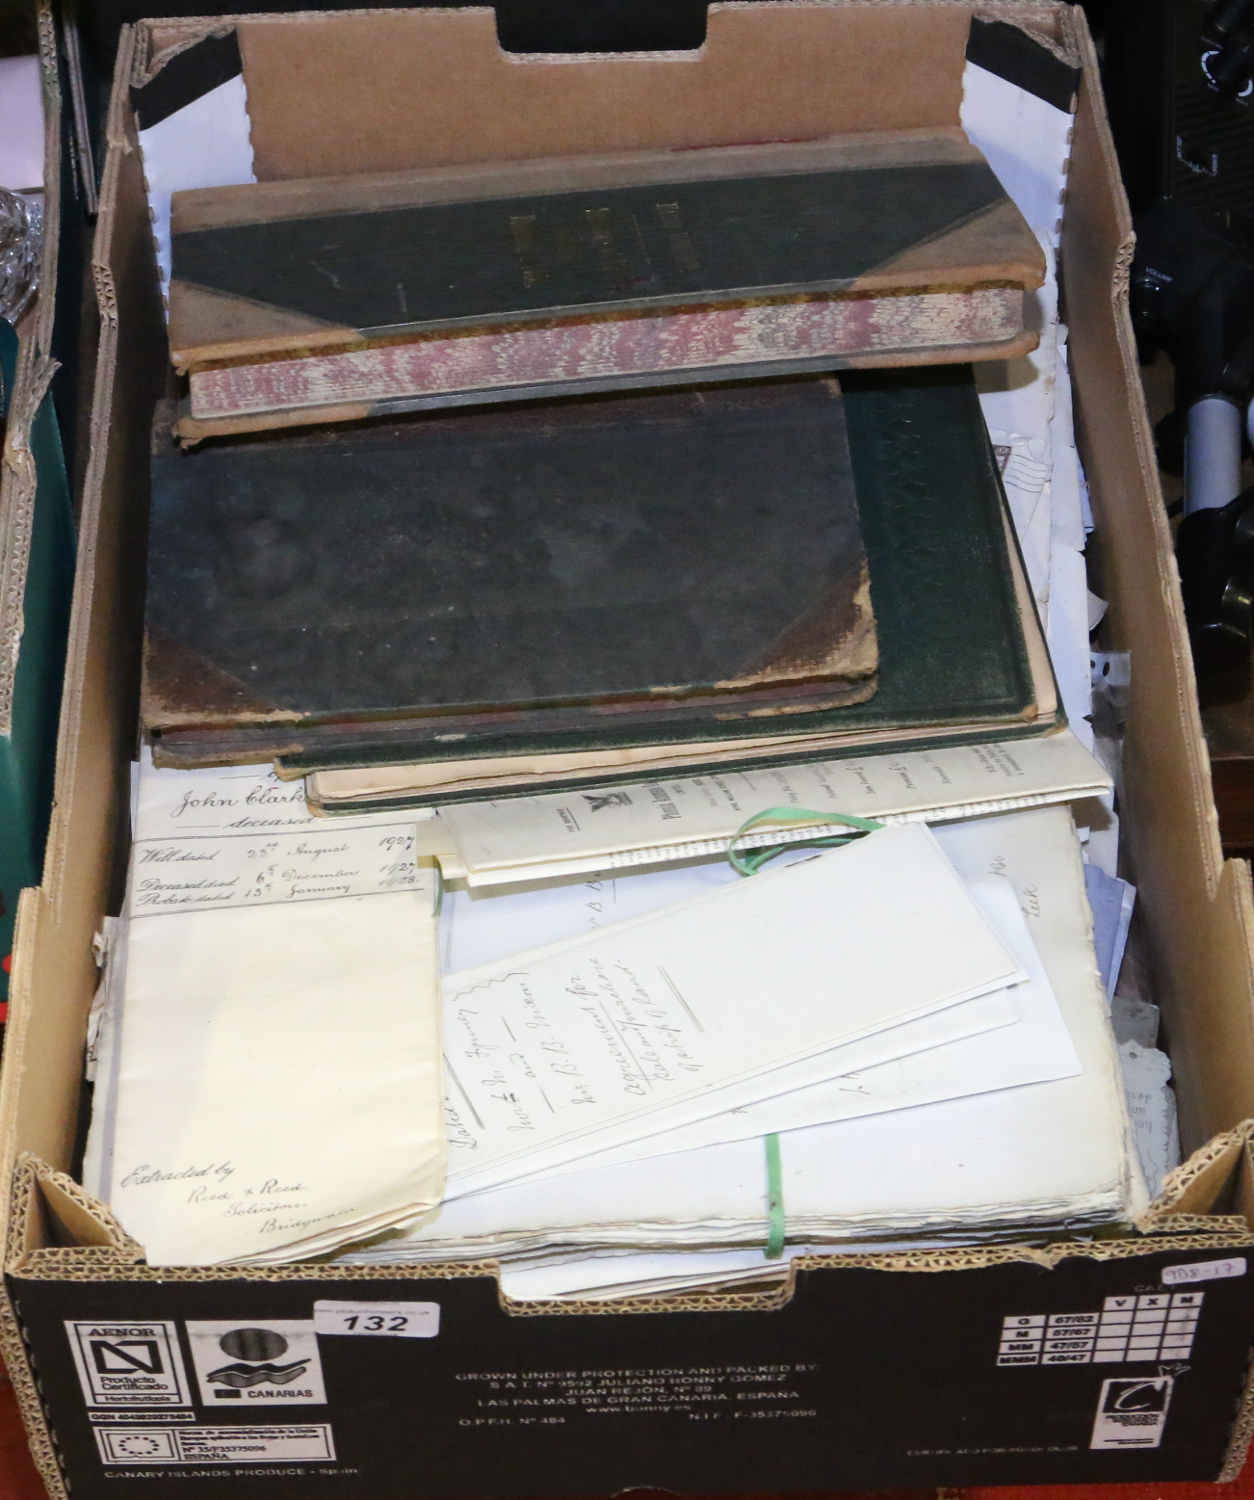 Private Family Collections Scanning Oxfordshire UK